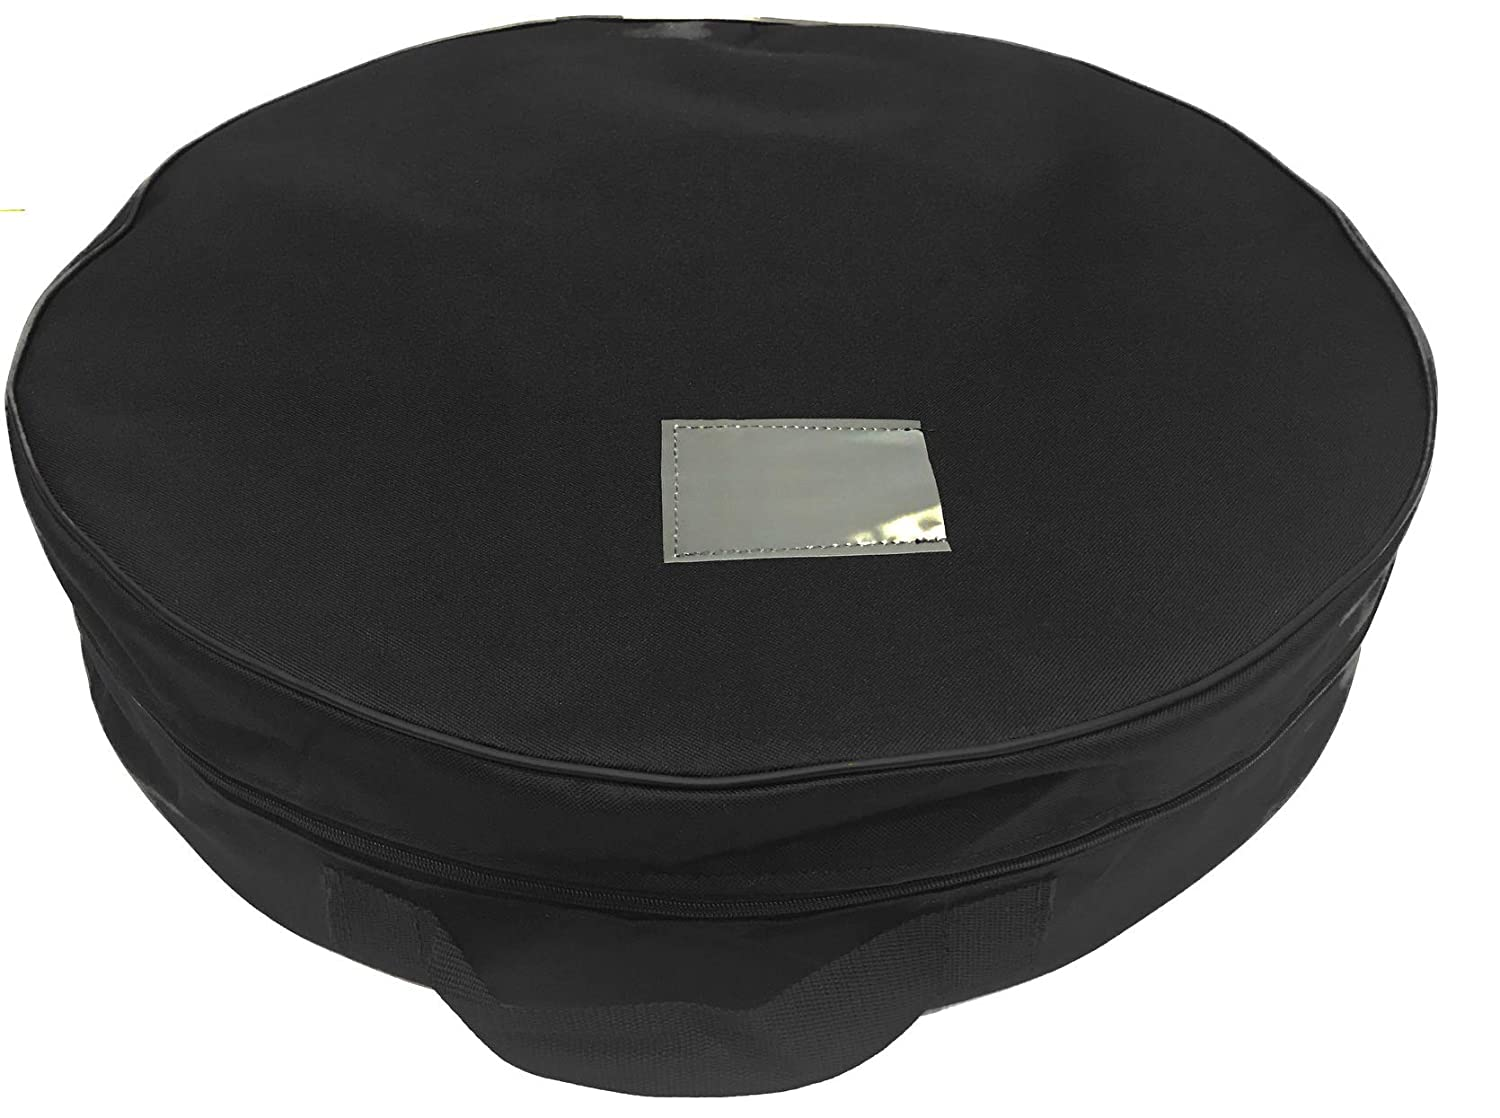 SPACE SAVER SPARE WHEEL TYRES COVER BAG FOR 155/70R19 TYRE thewheelshop